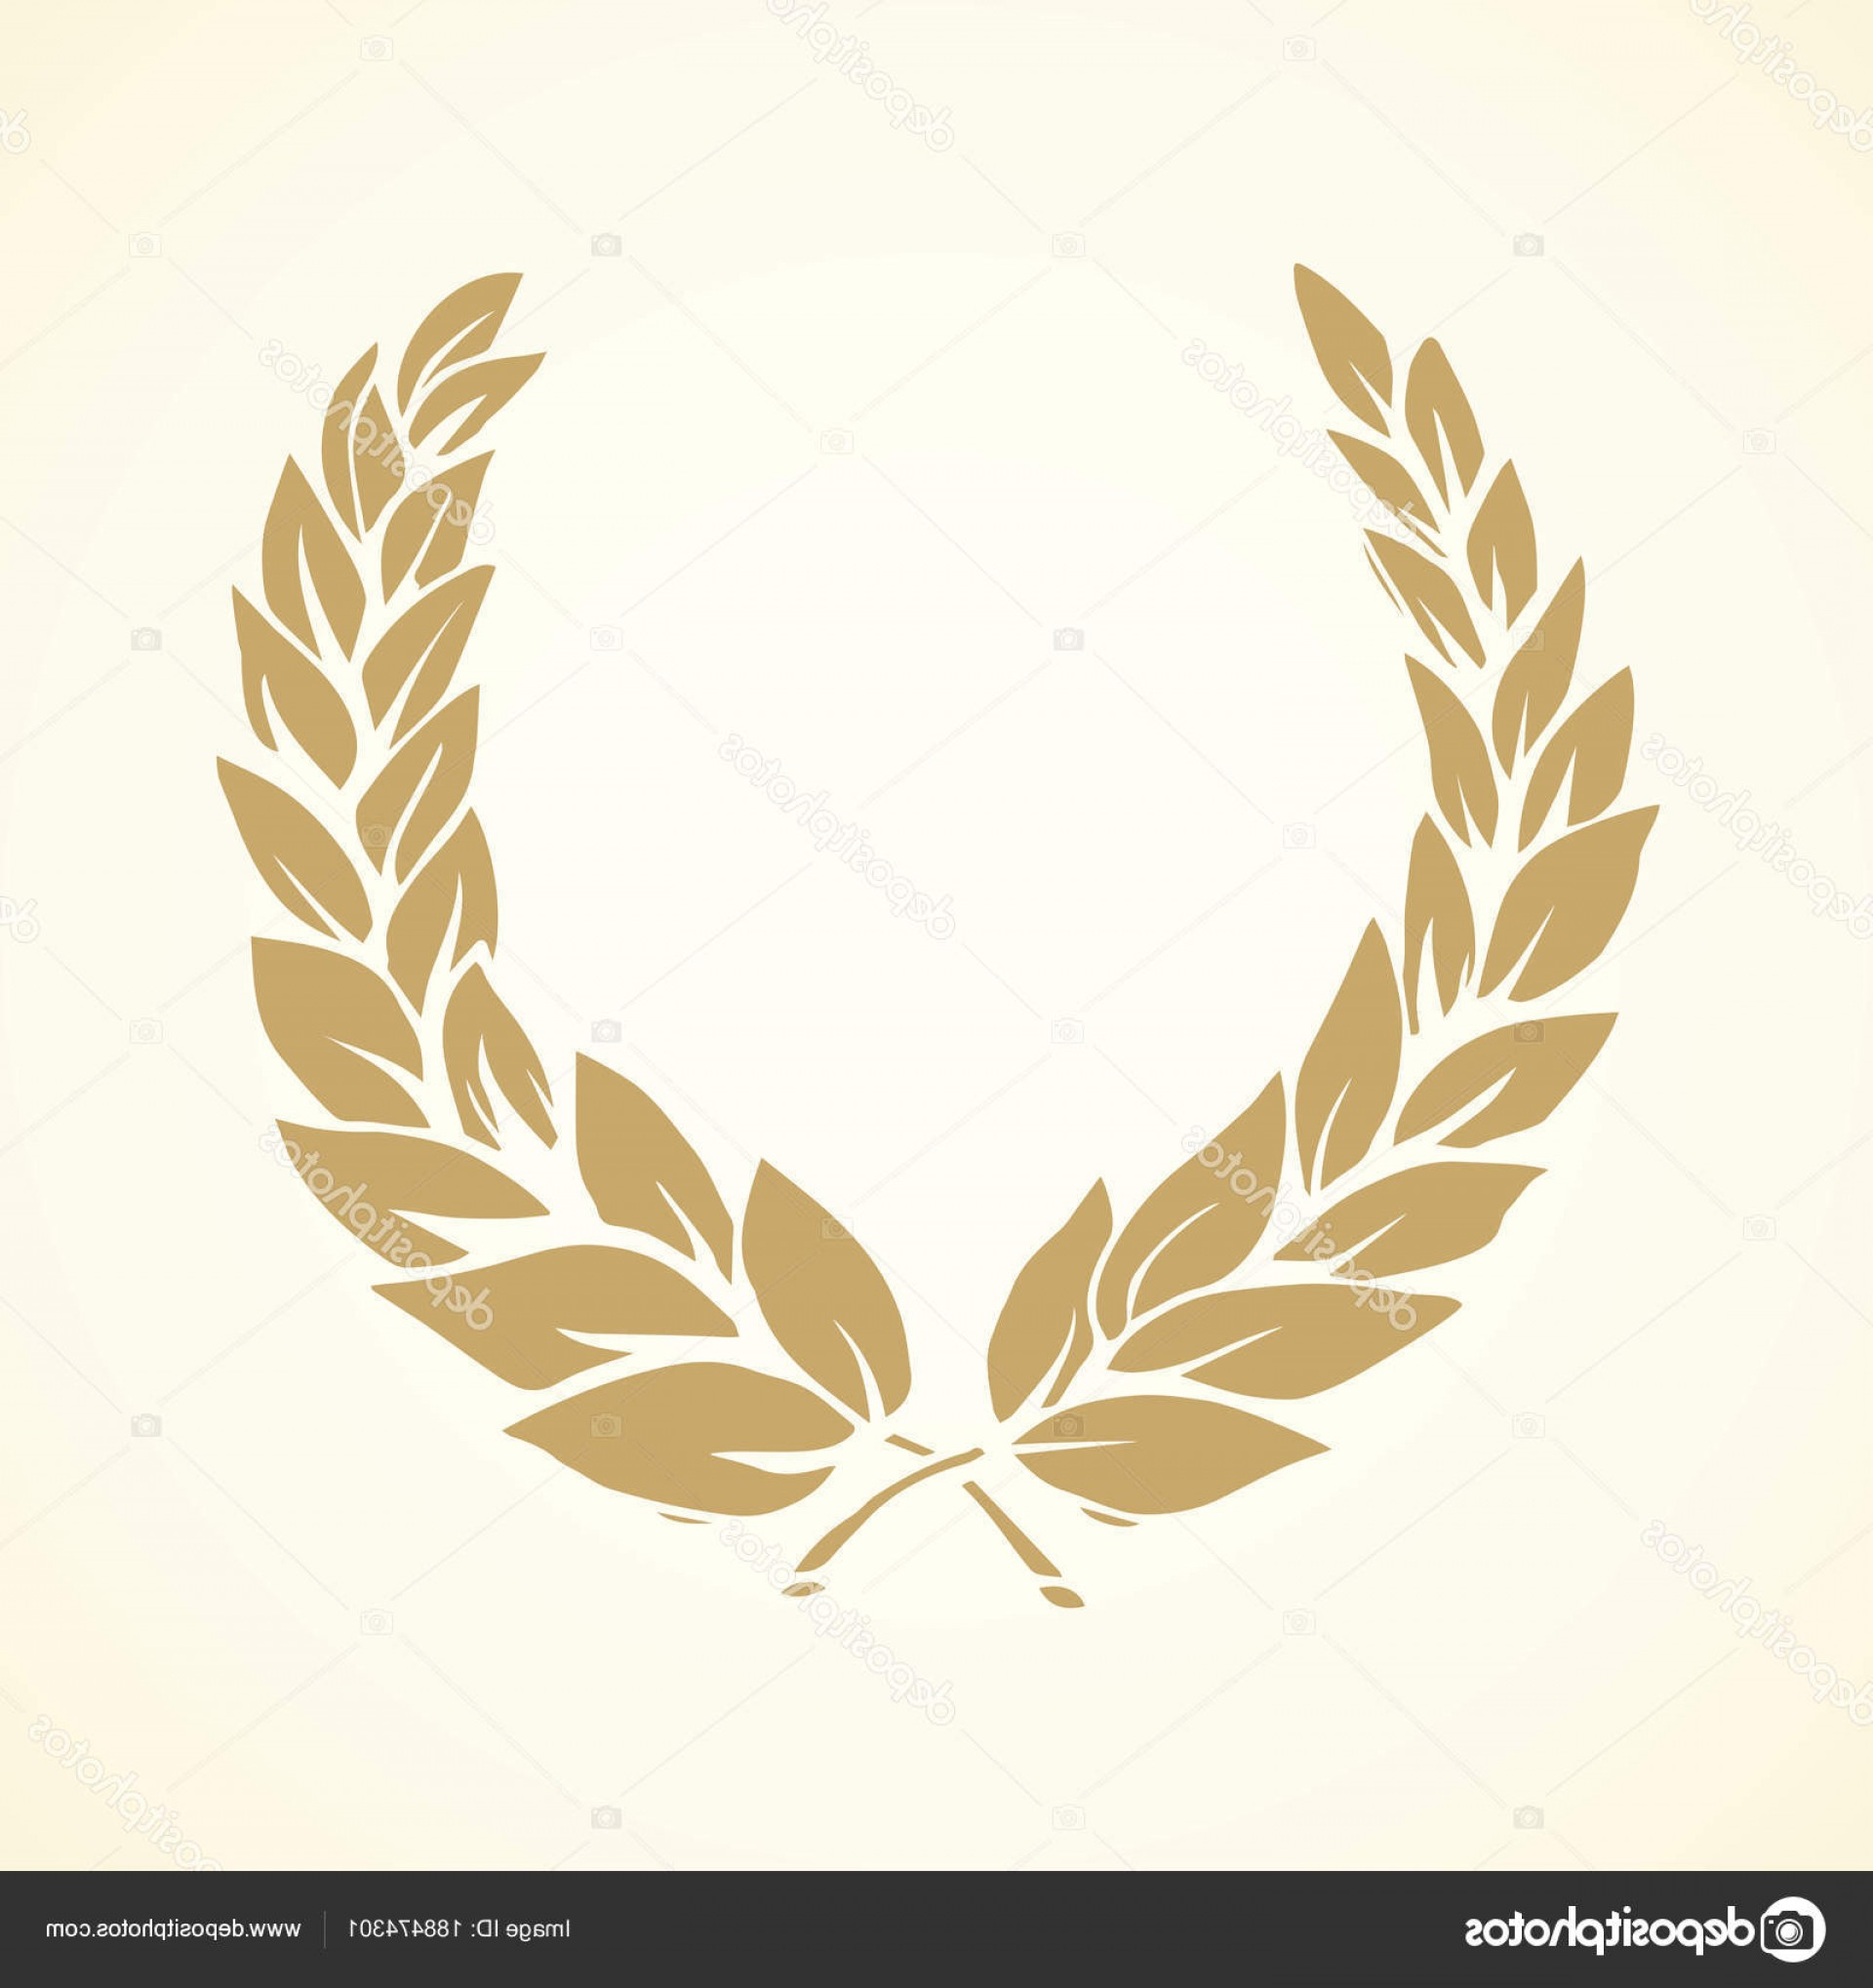 Floral Laurel Wreath Vector: Stock Illustration Laurel Wreath Vector Drawing